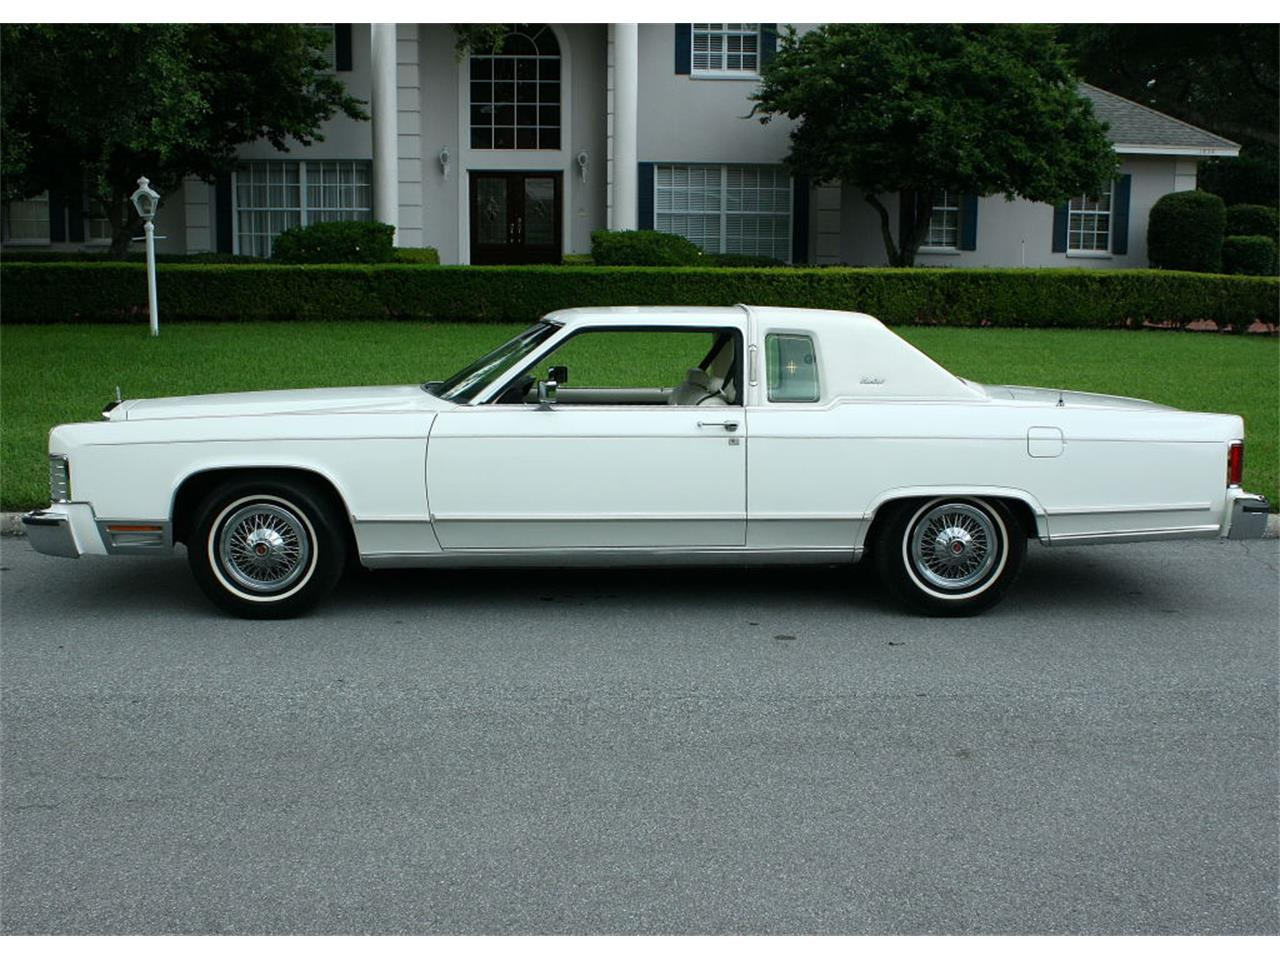 Large Picture of '79 Town Car - $17,500.00 - LBZD